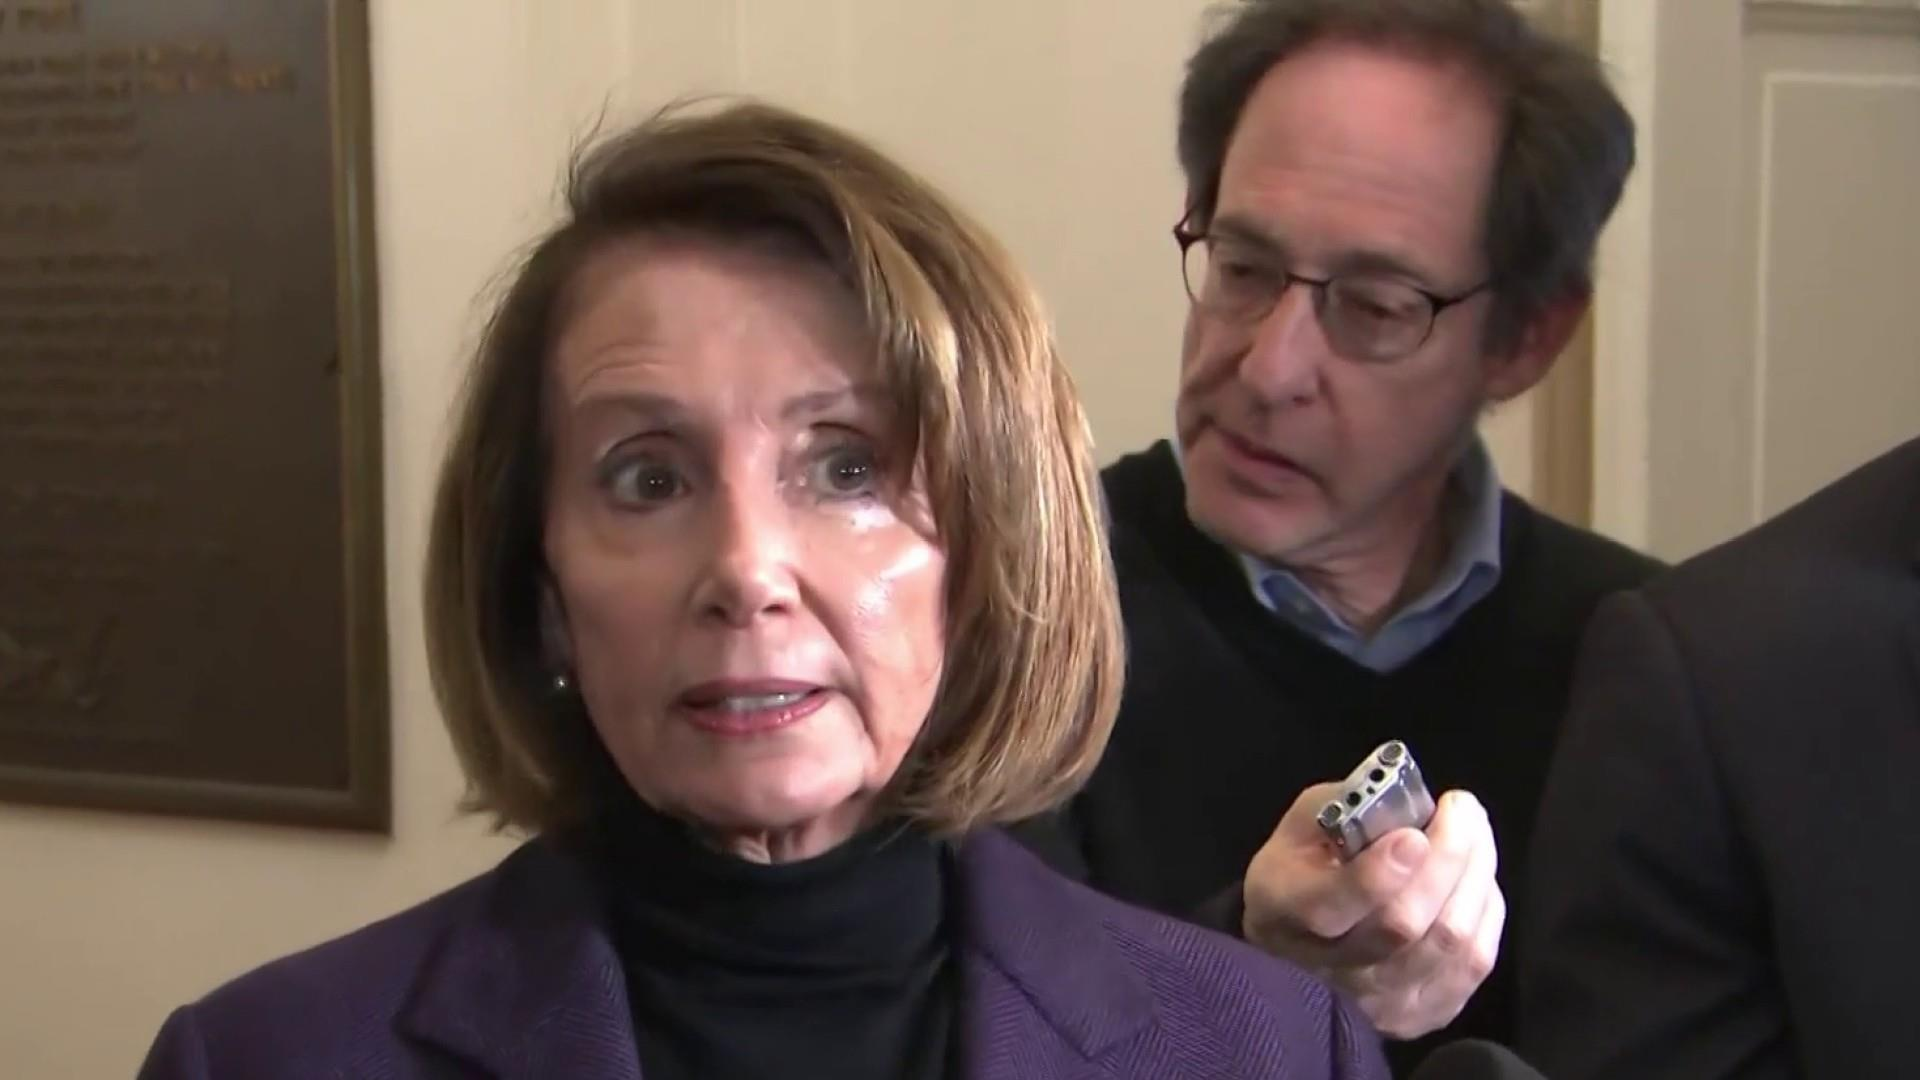 Pelosi on Trump retaliation claims: 'I don't think the president would be that petty, do you?'